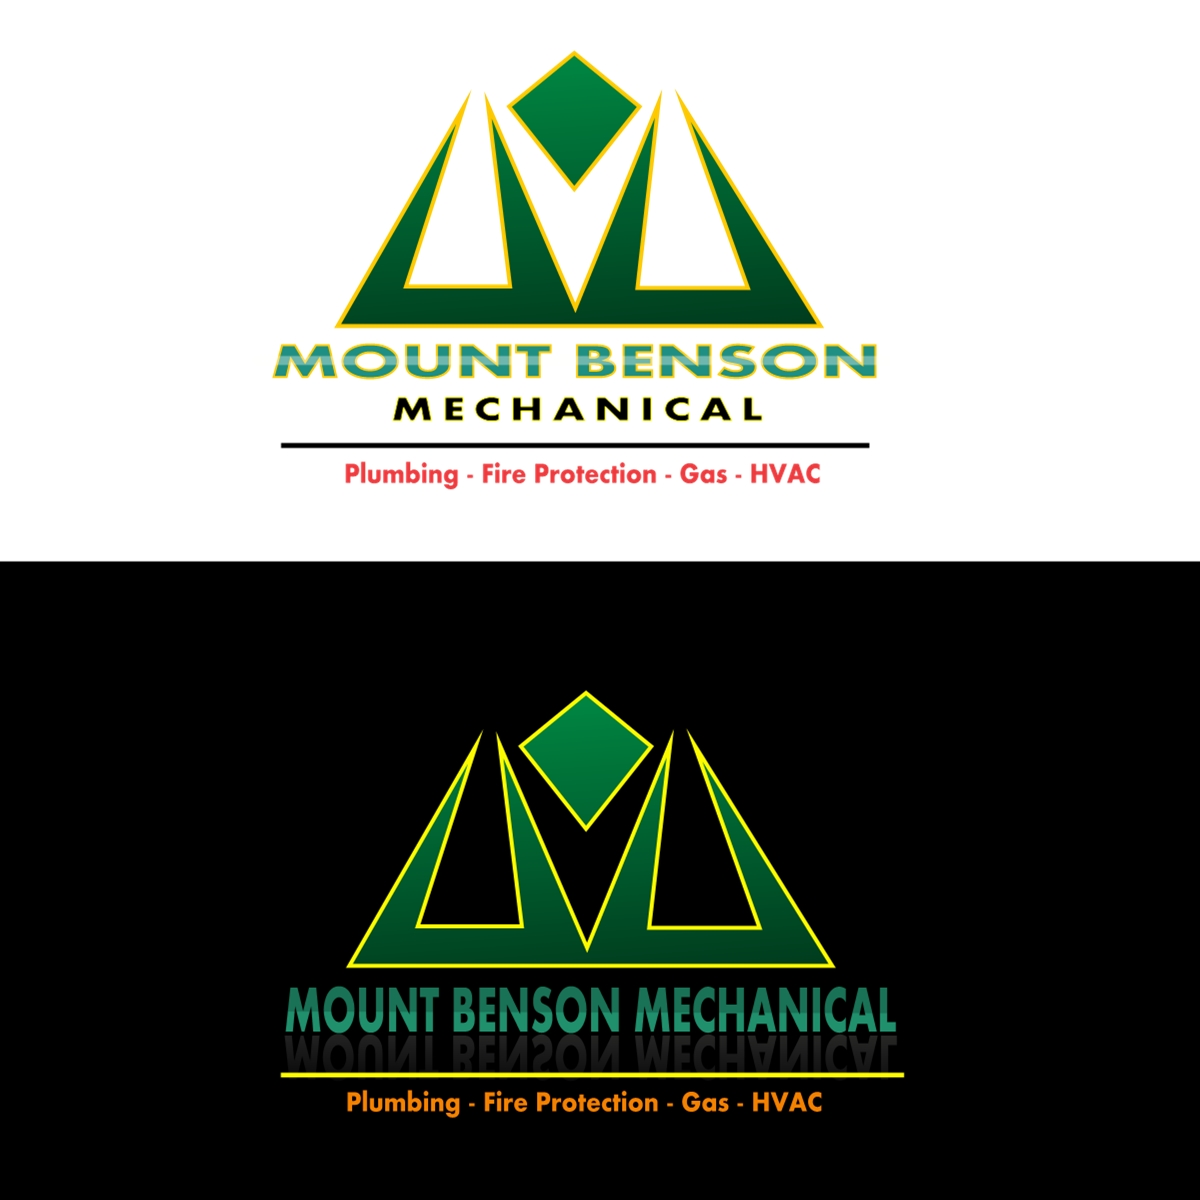 Logo Design by Joseph calunsag Cagaanan - Entry No. 66 in the Logo Design Contest Mount Benson Mechanical.